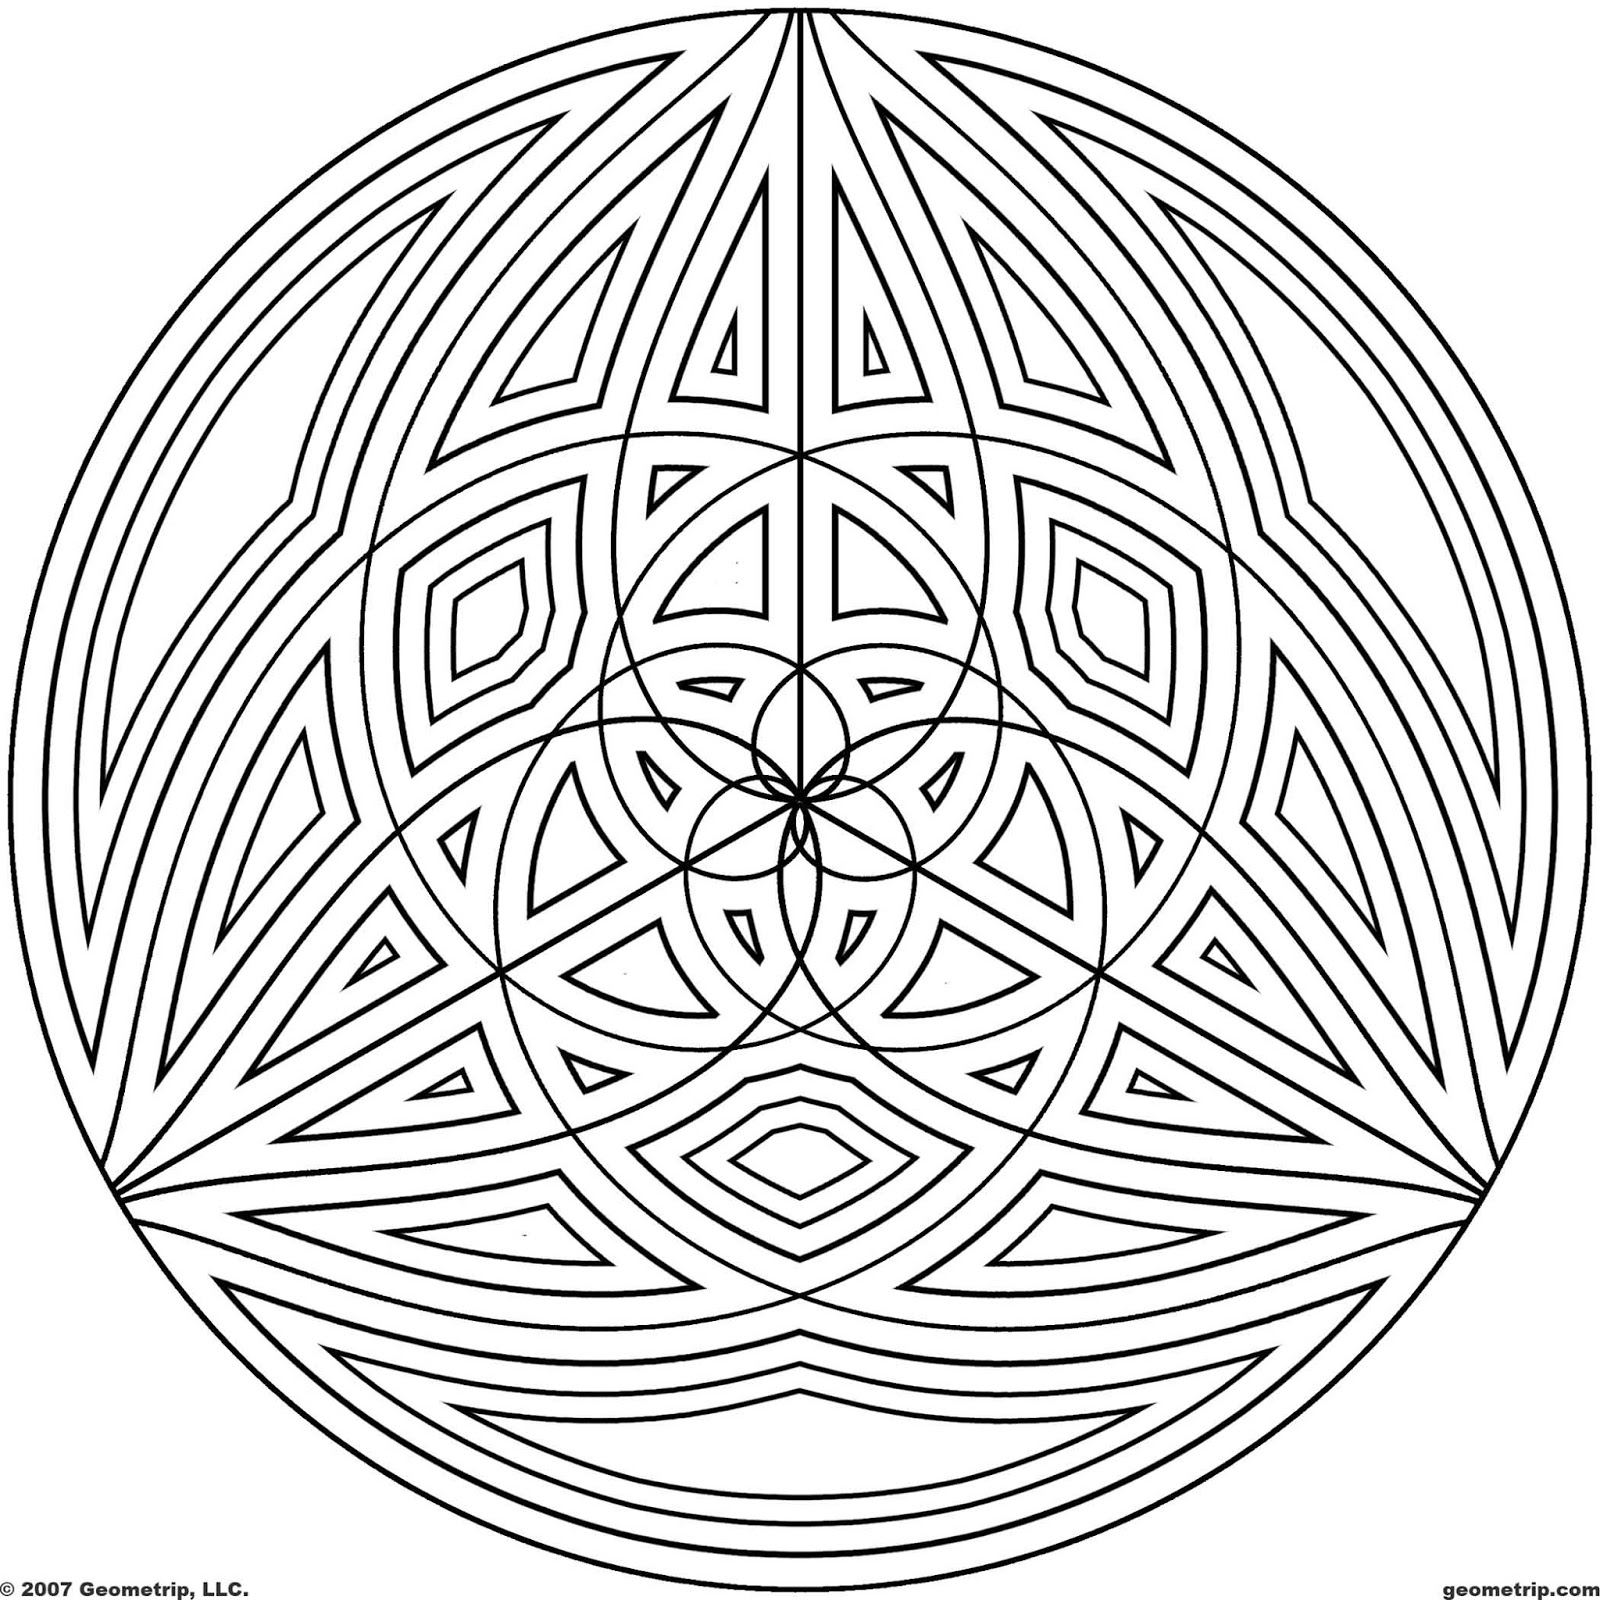 cool designs coloring pages cool png designs free download best cool png designs on designs coloring cool pages